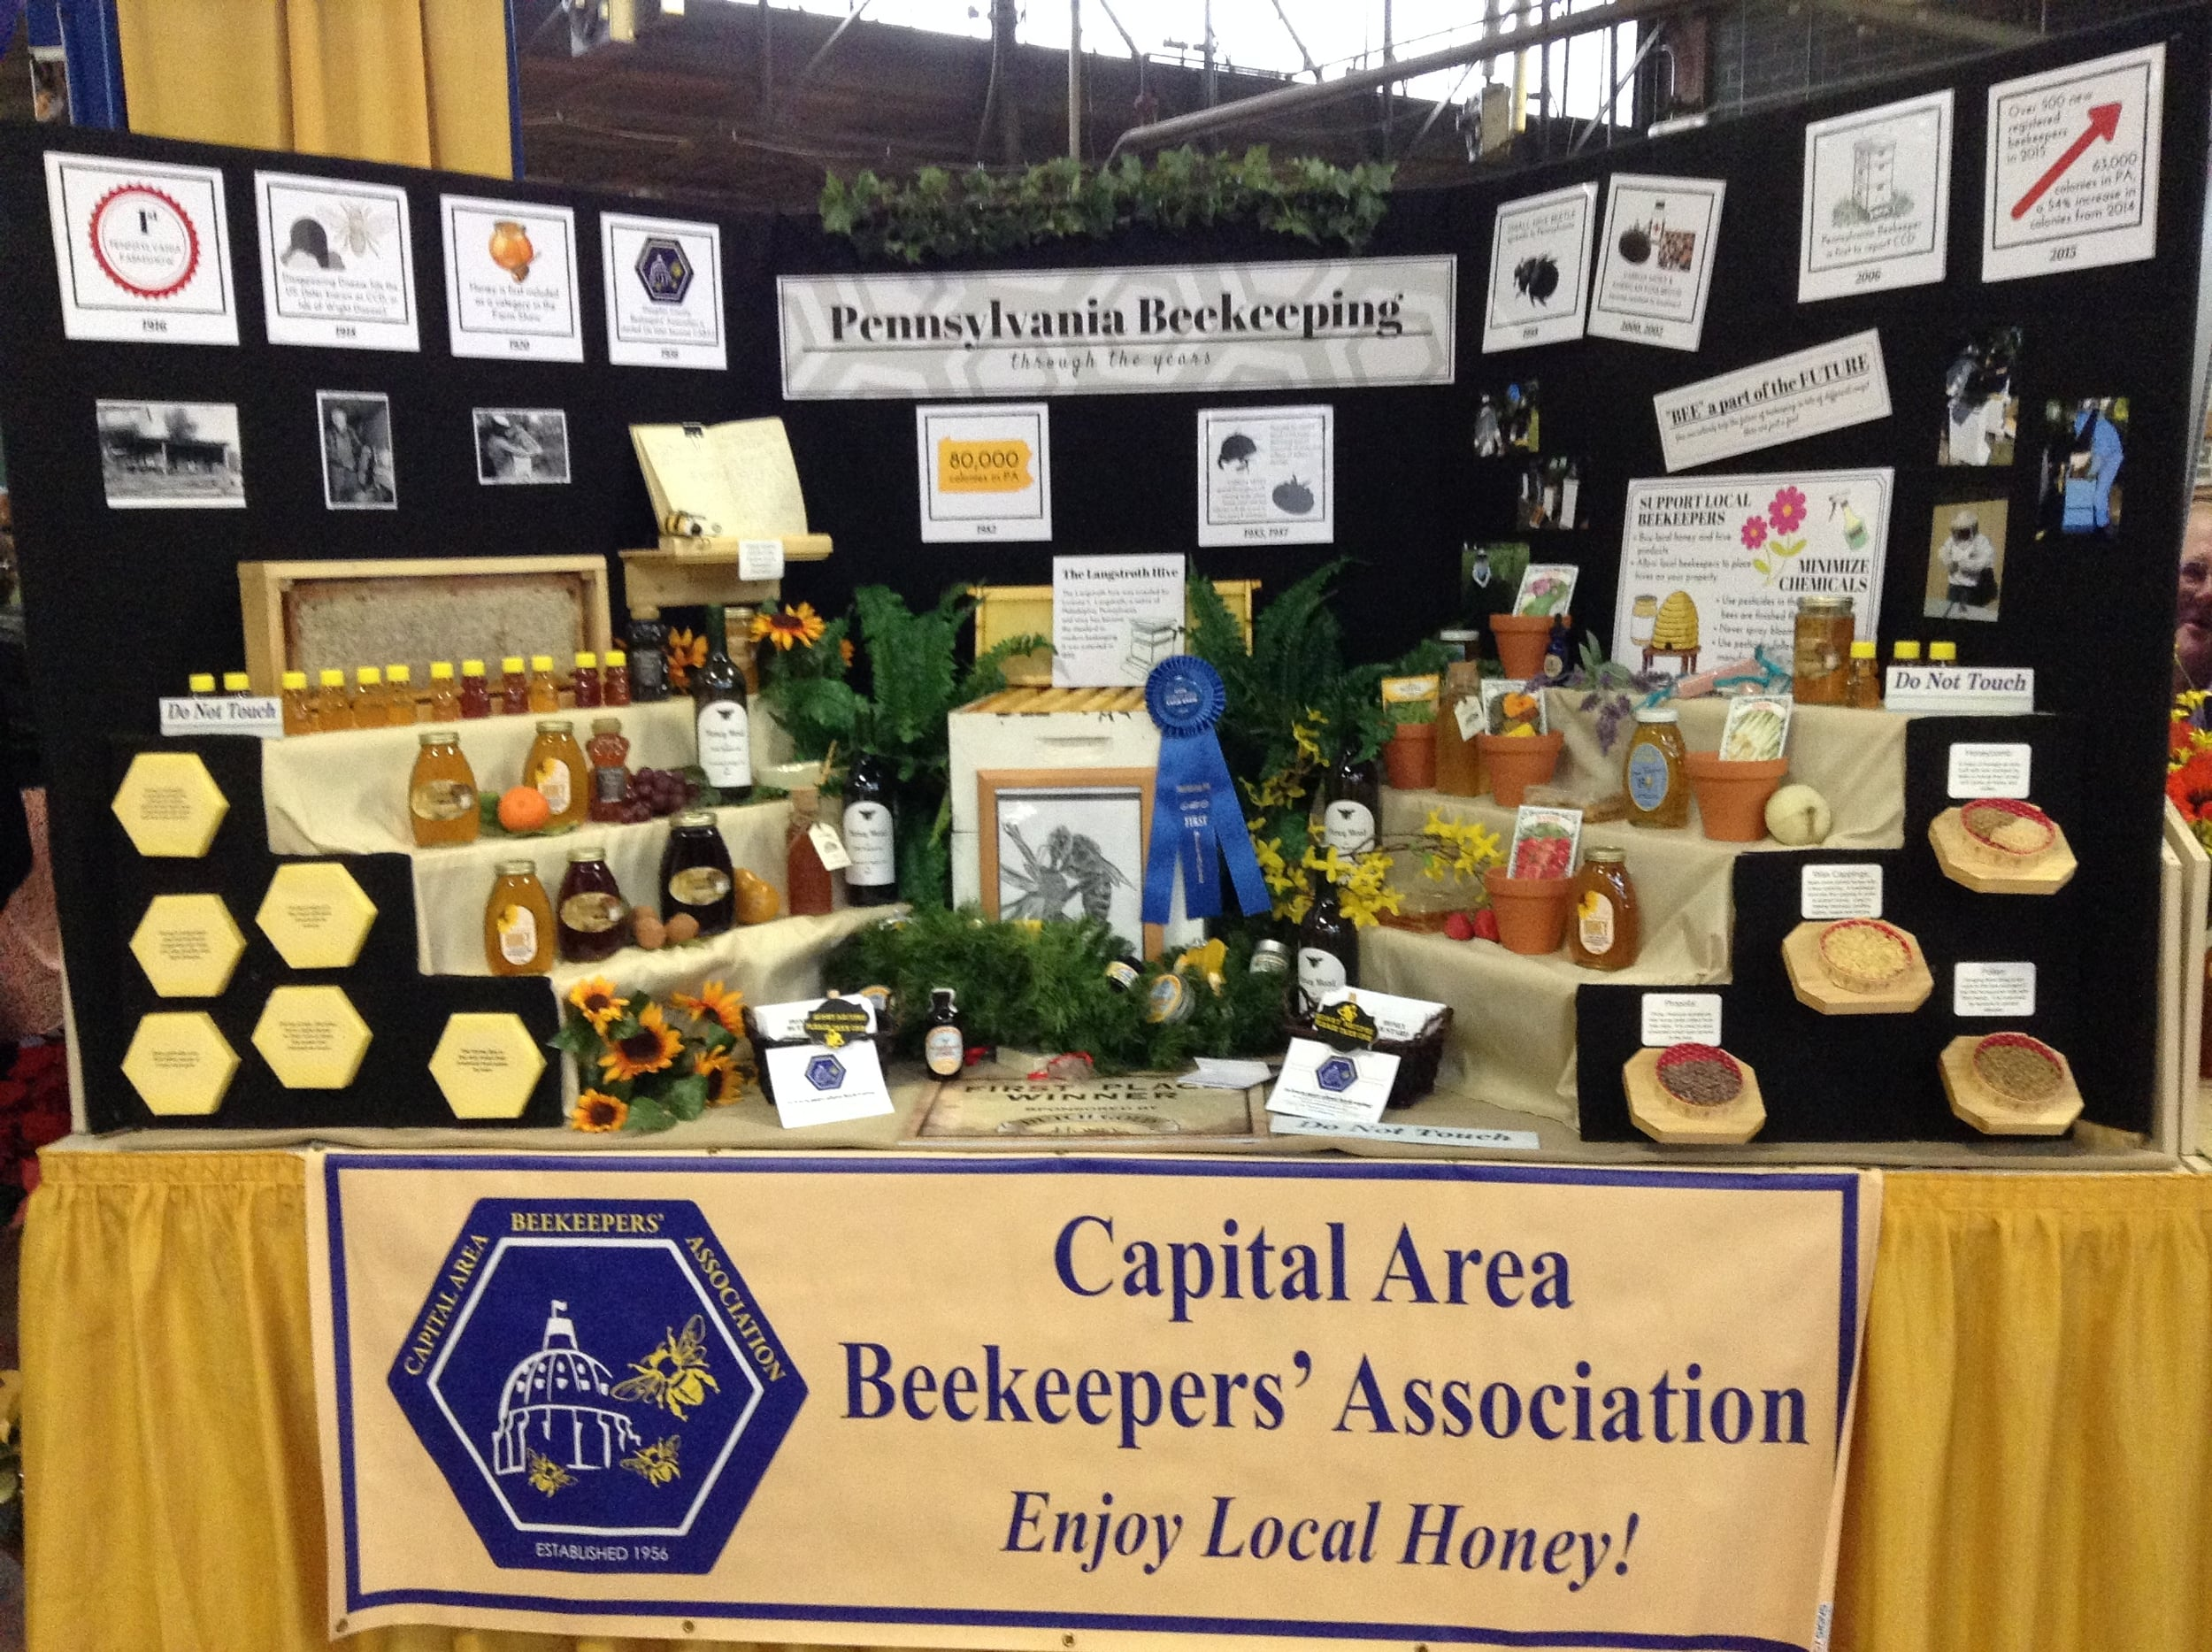 First Prize: 2016 Farm Show County or Association Collective Exhibits